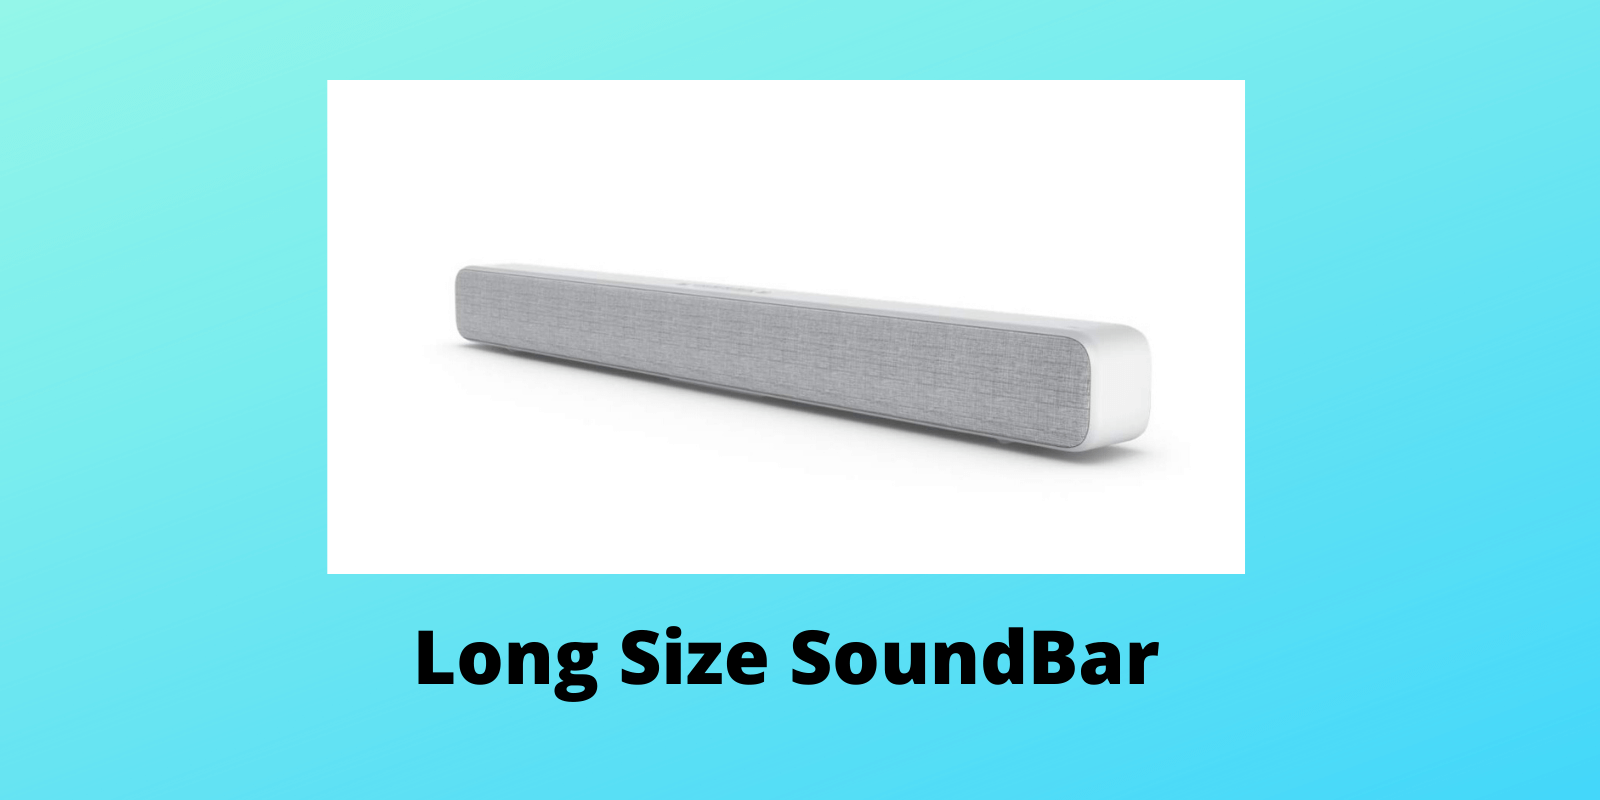 xiaomi mi tv soundbar review